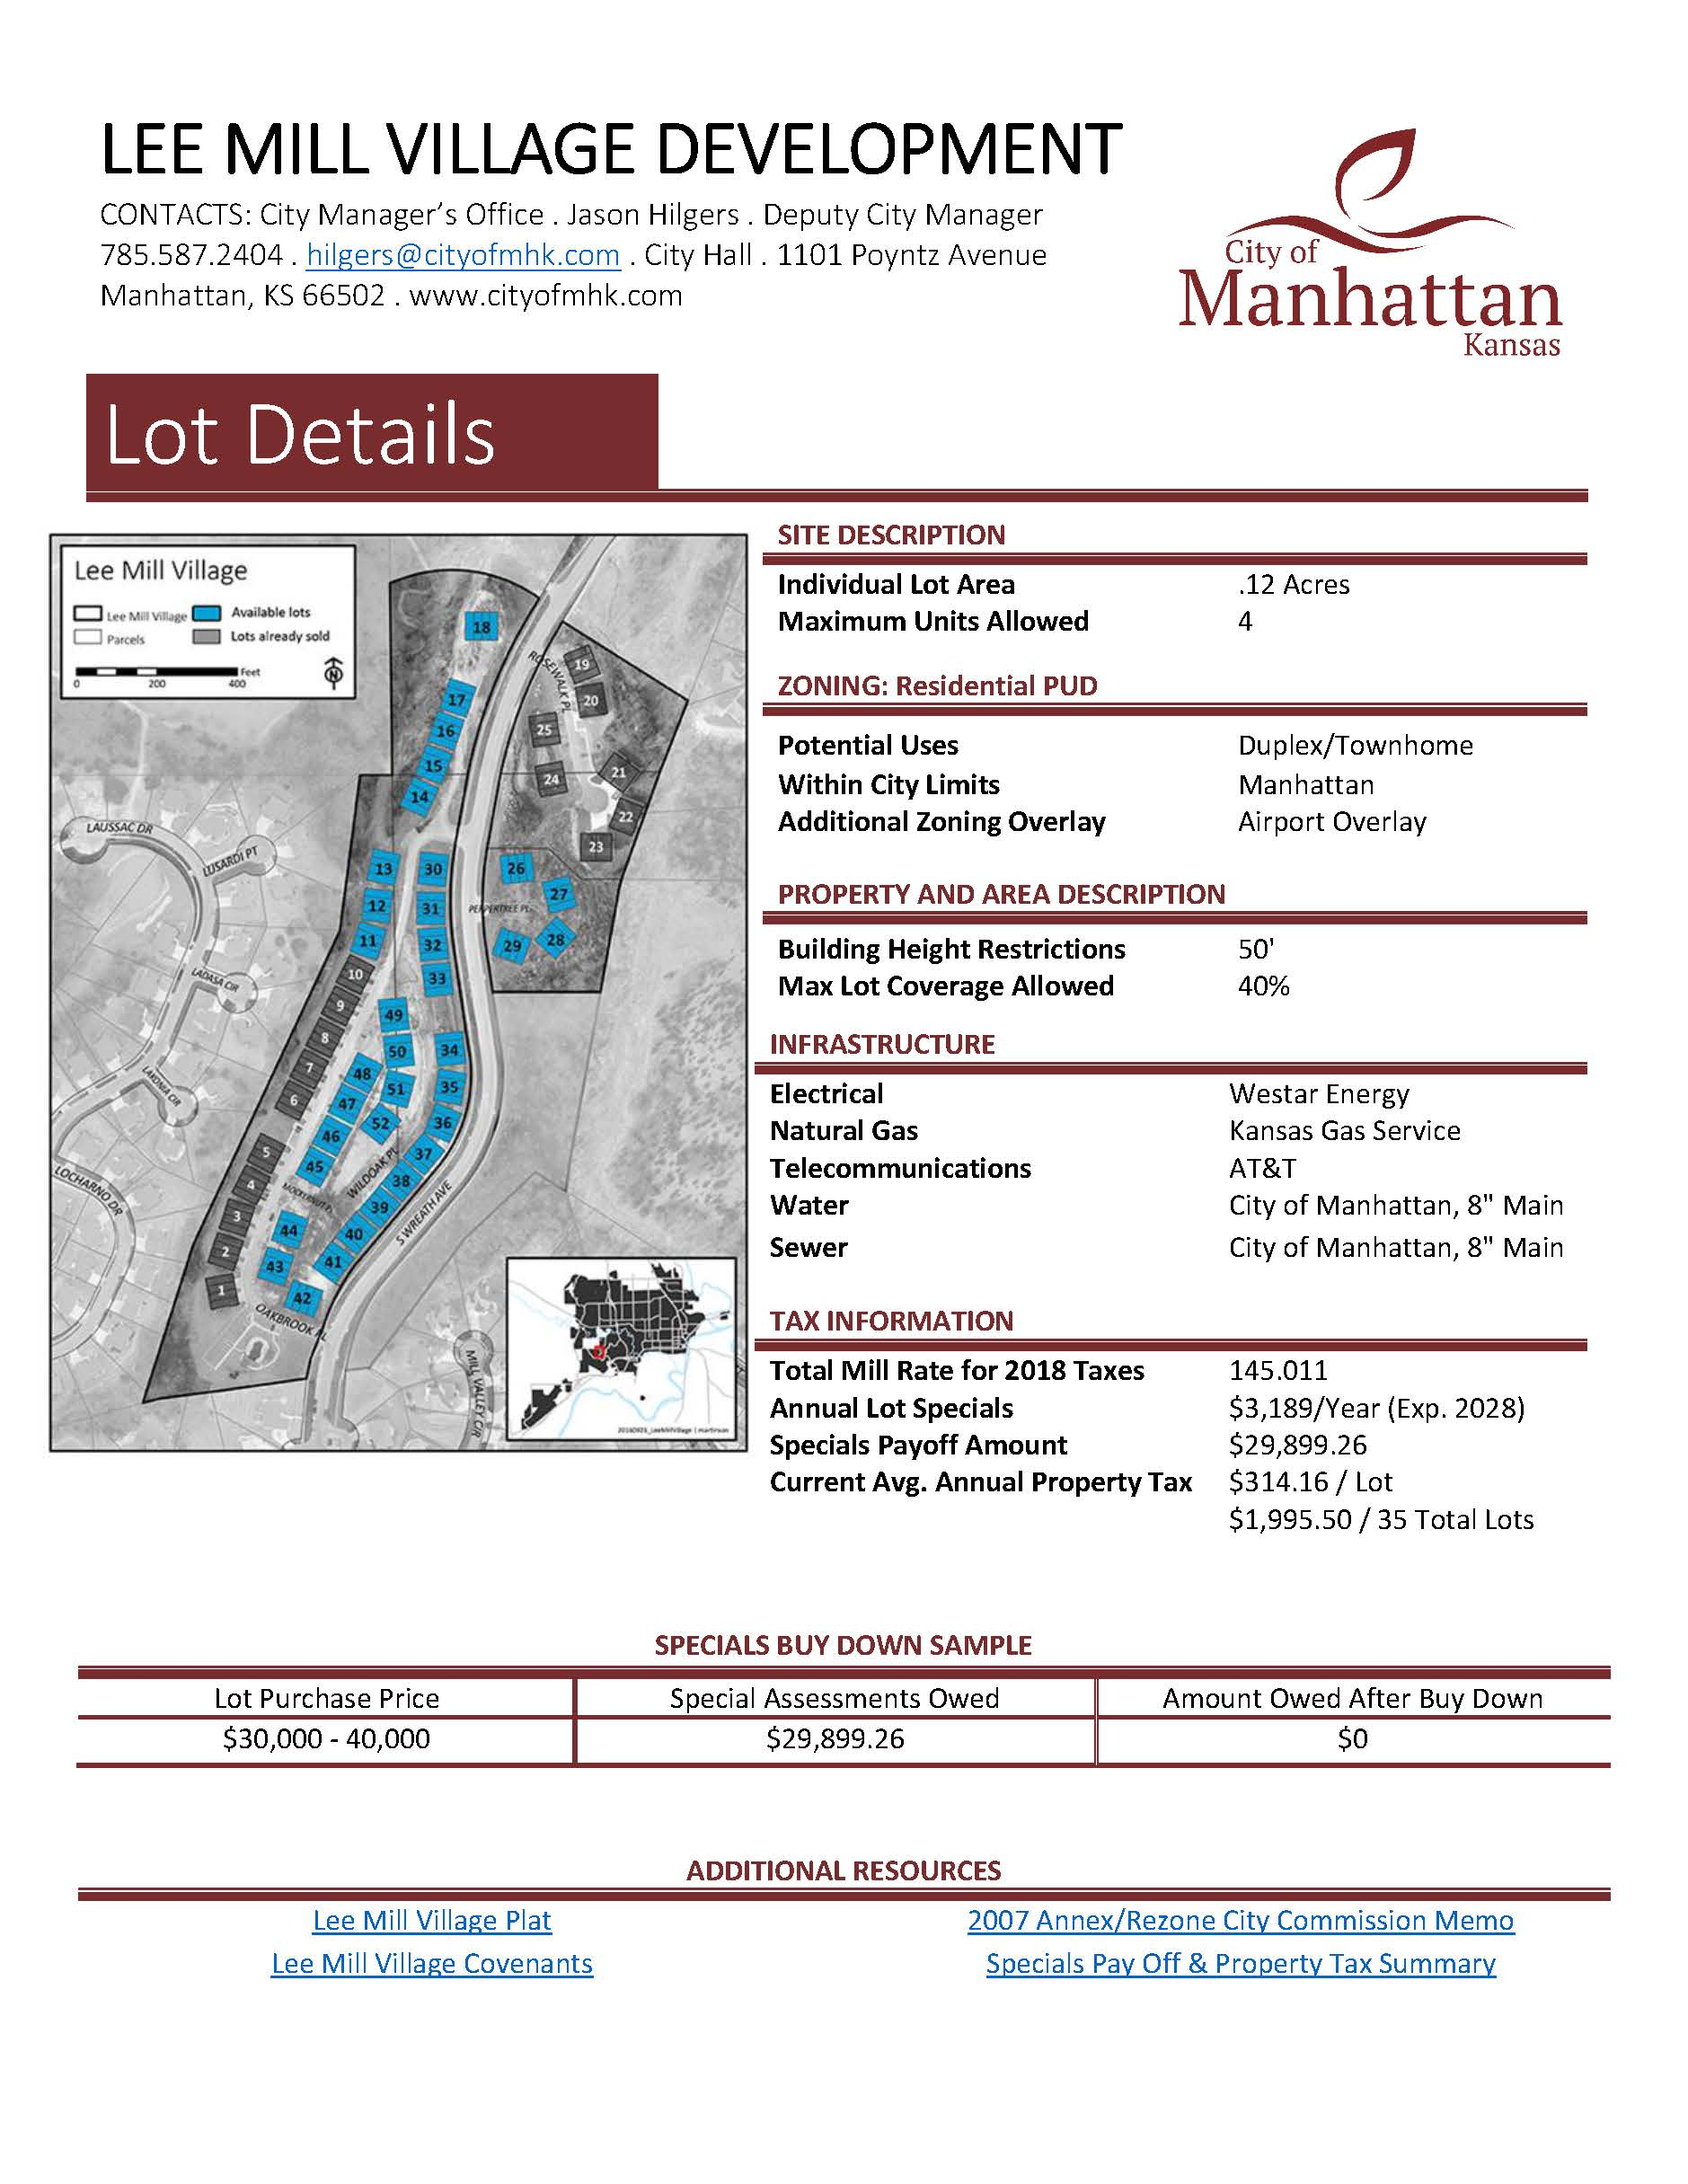 image of data sheet for Lee Mill Village - click for PDF Opens in new window